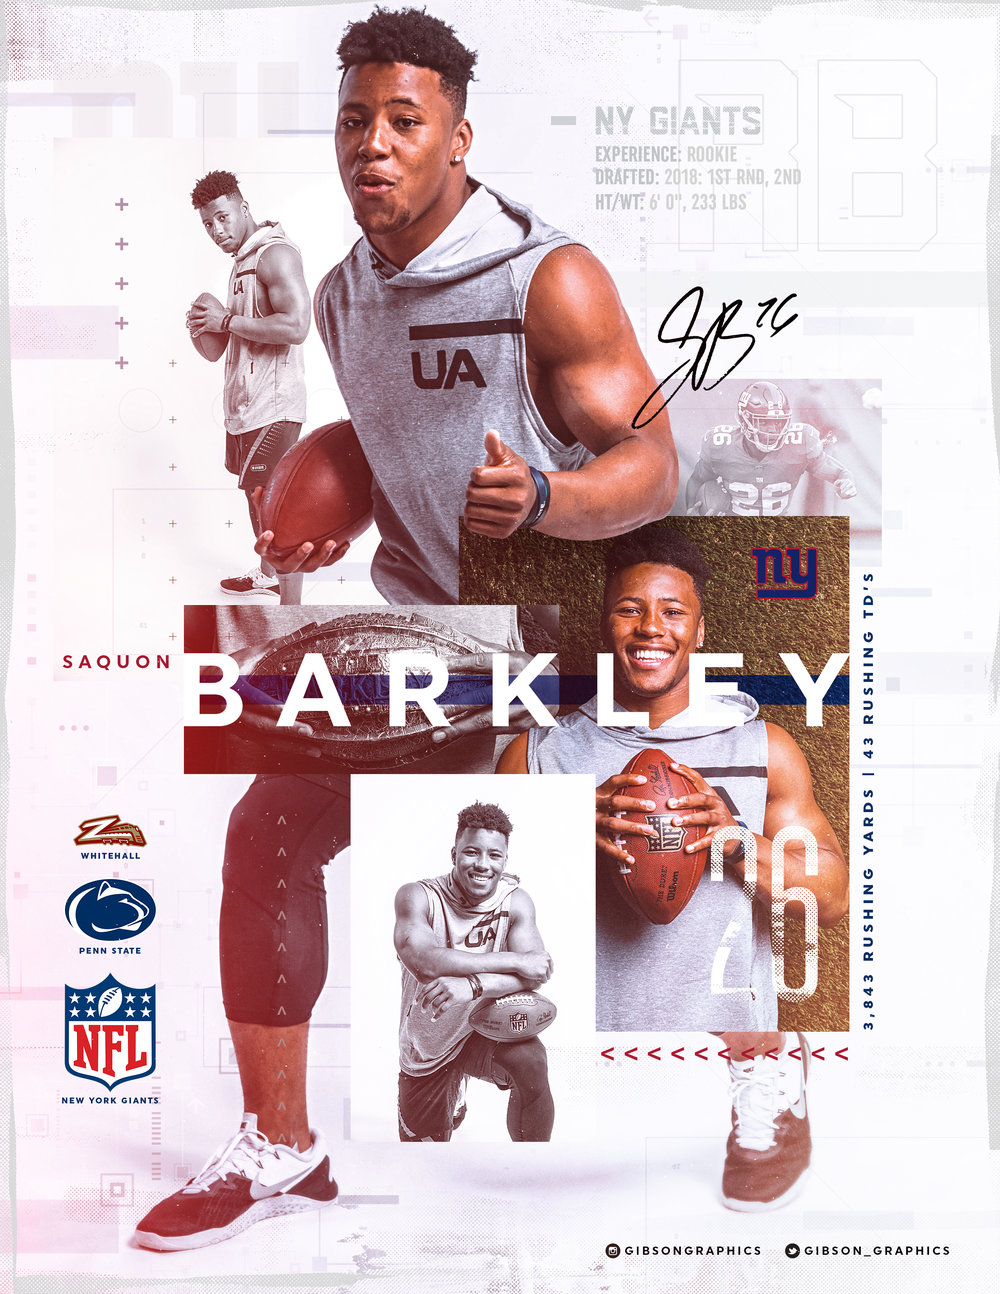 Saquon Barkley Minimal Giants Artwork